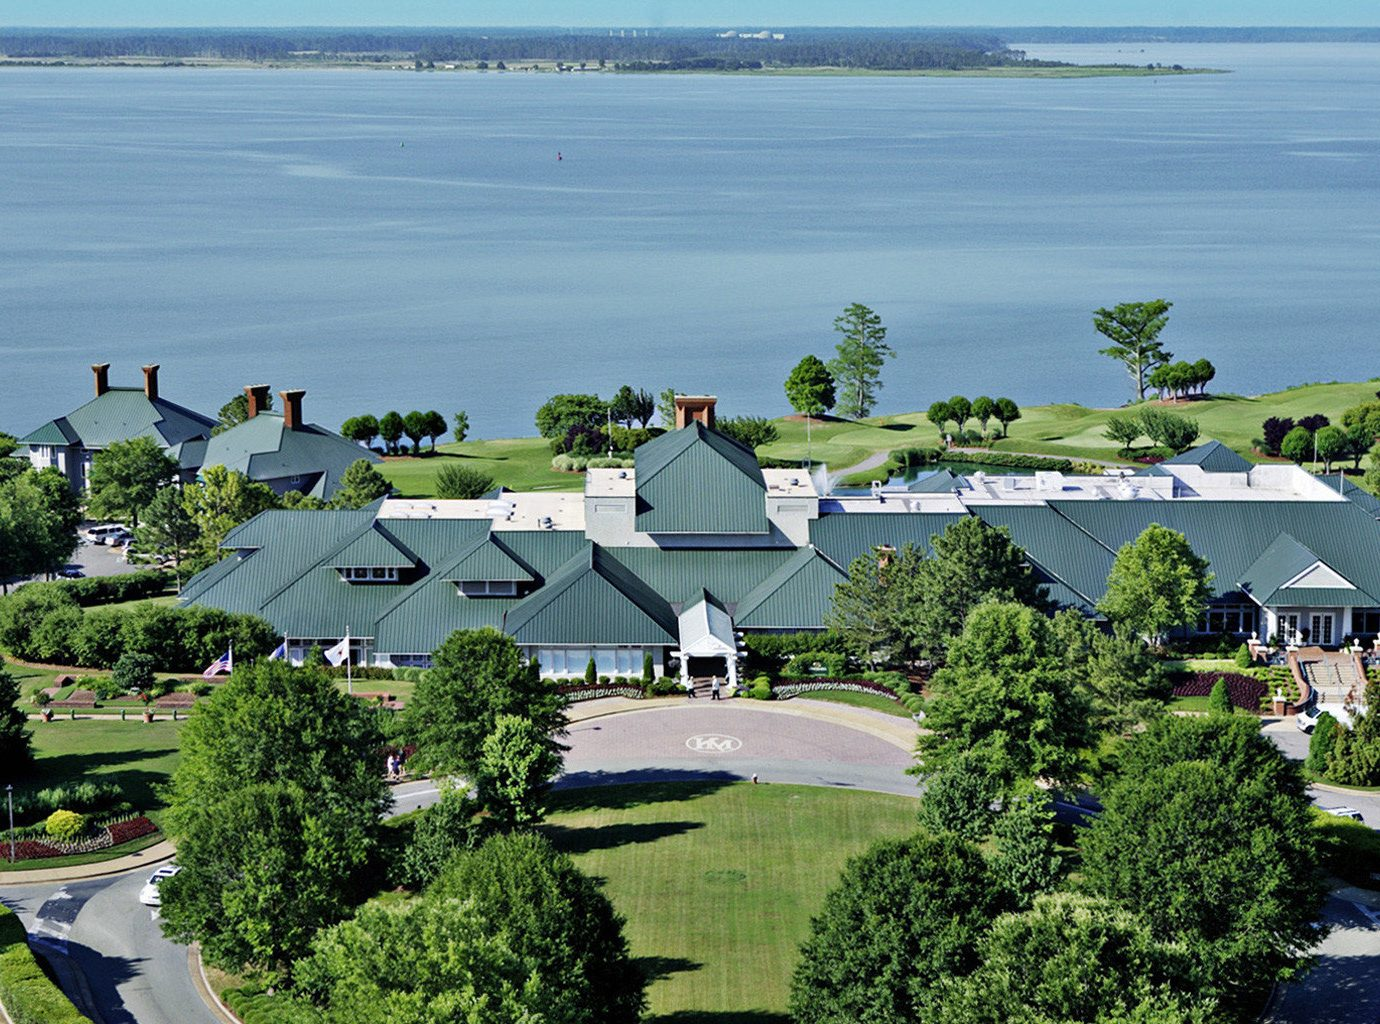 Classic Country Exterior Resort Waterfront tree aerial photography residential area house suburb Garden lush